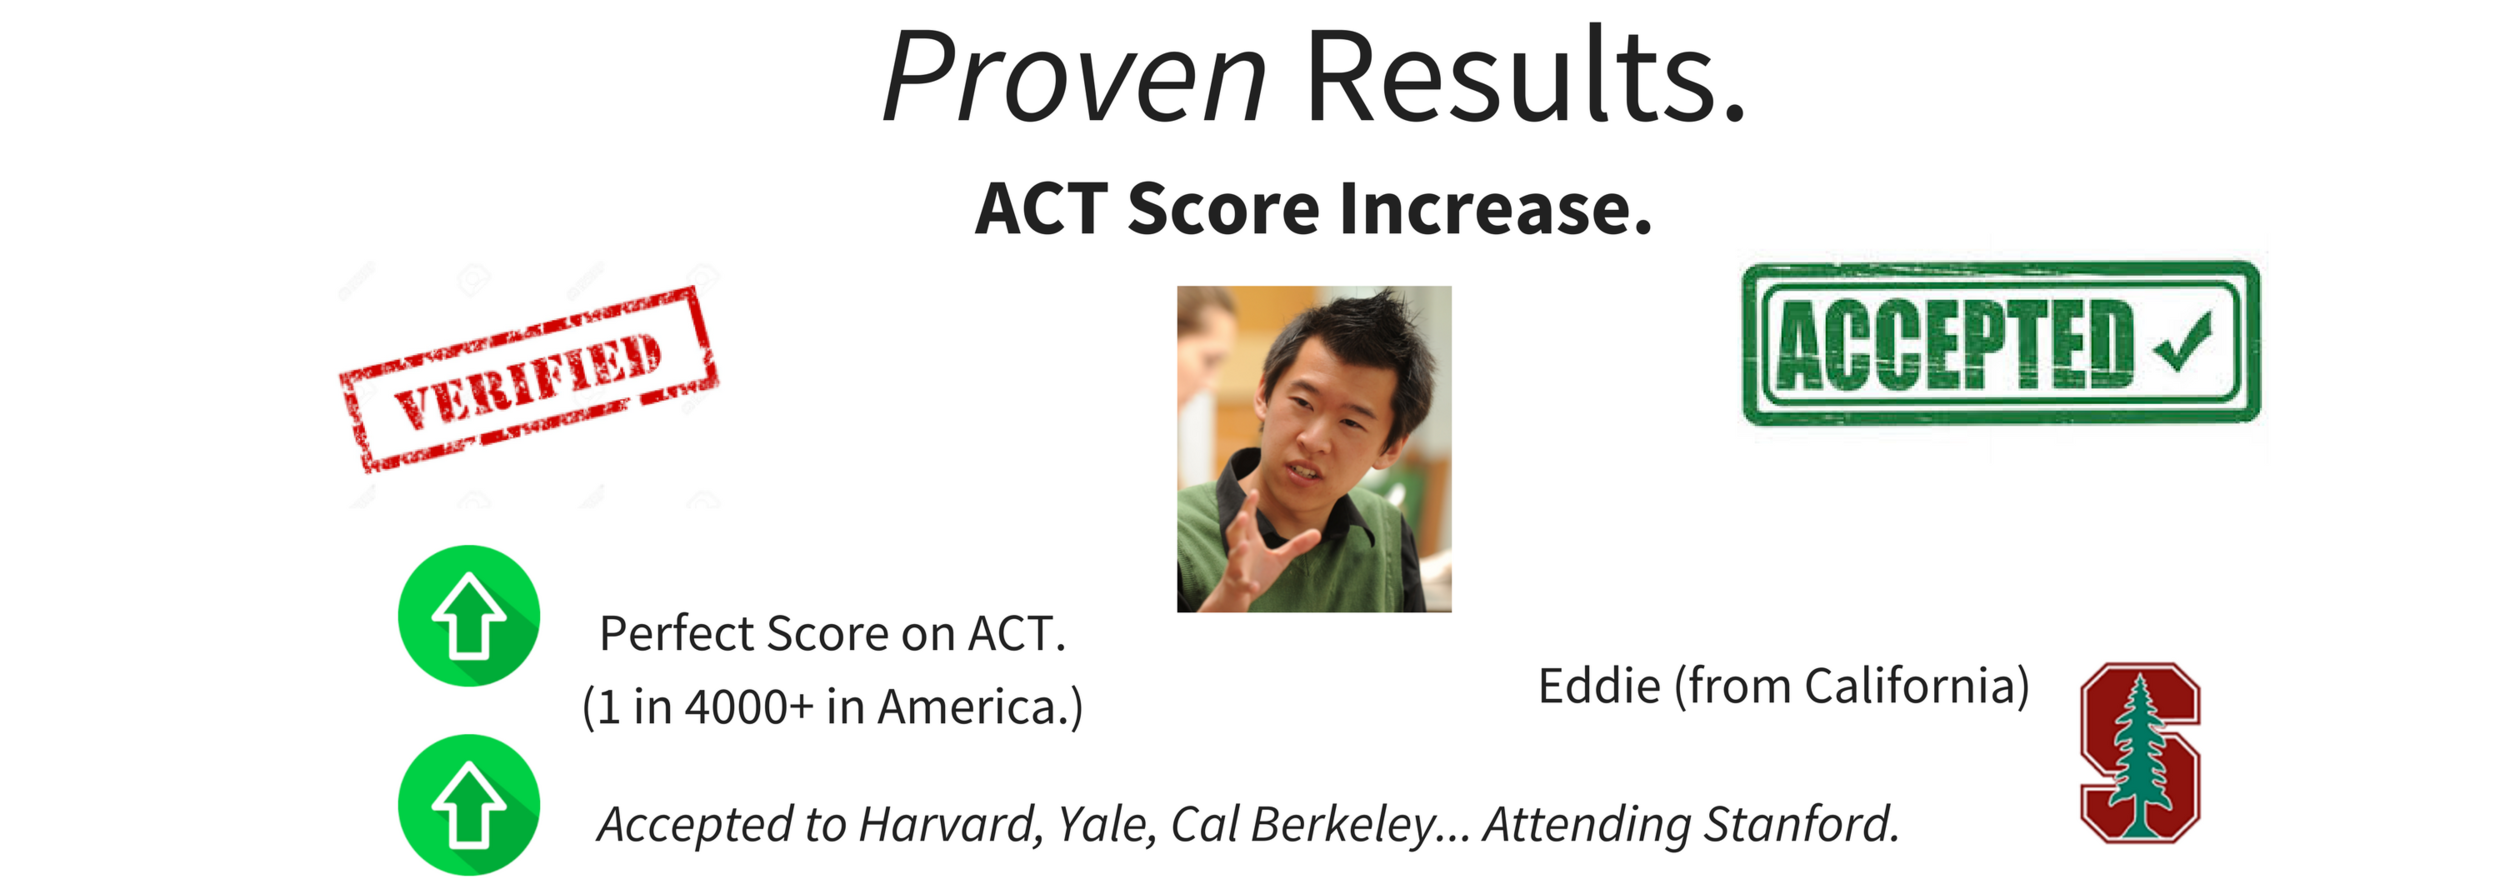 Student received perfect ACT exam score... a 36.